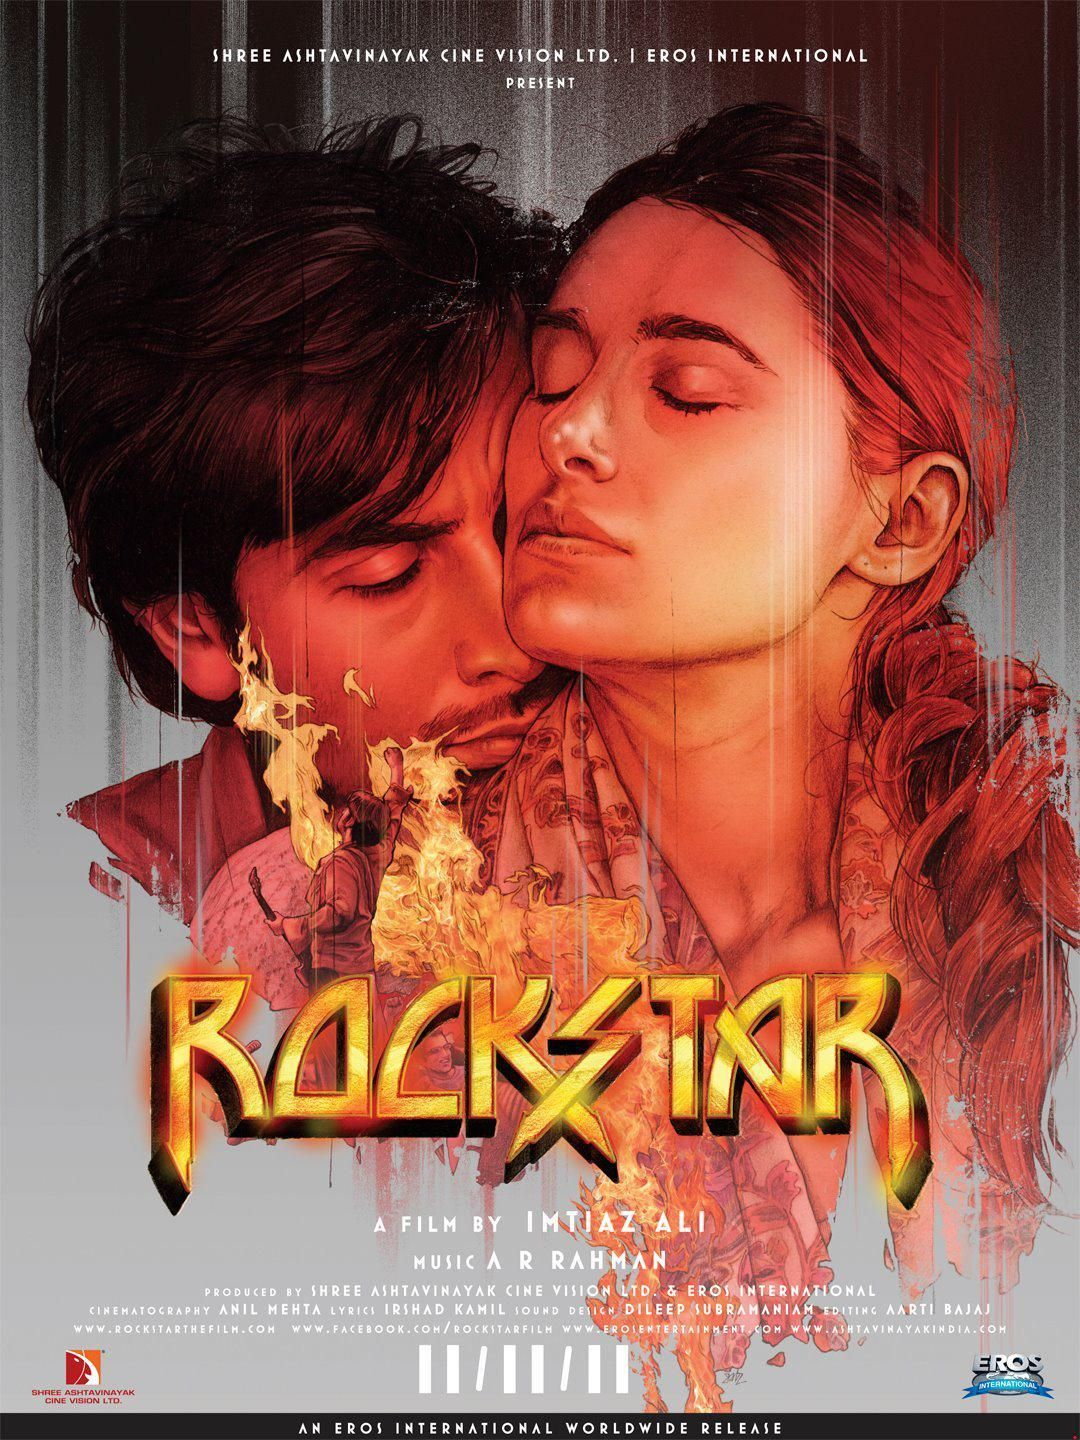 Rockstar Hindi Movie Songs Free Download Zip